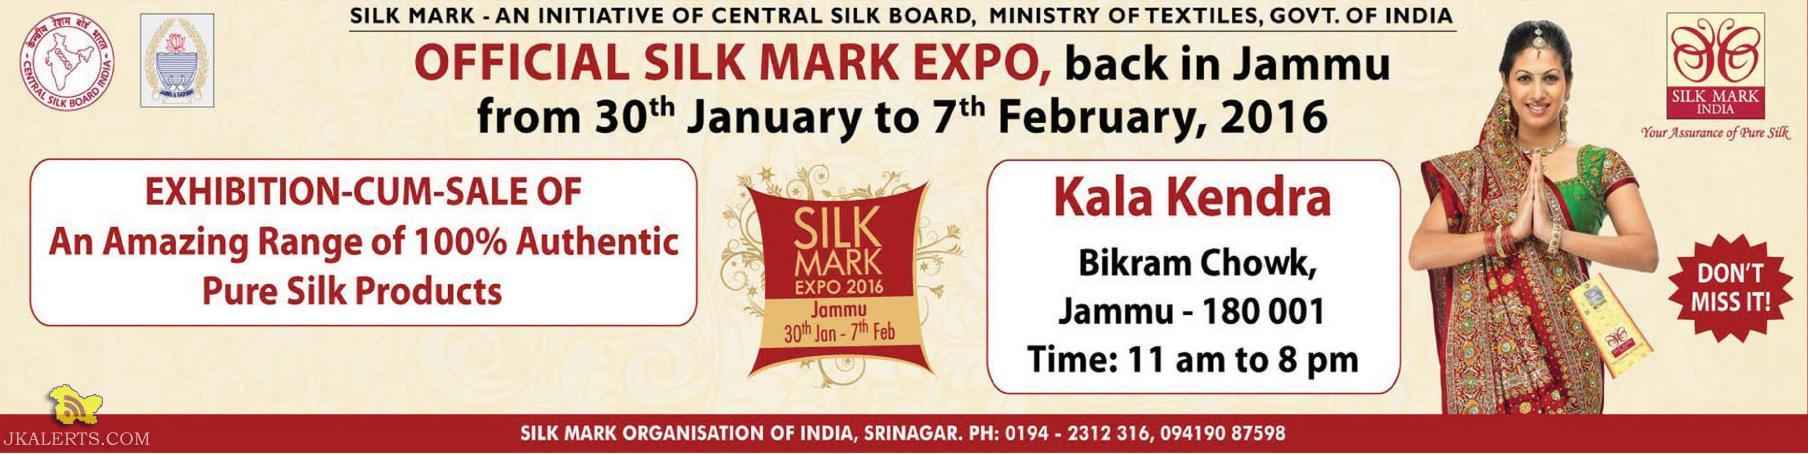 EXHIBITION-CUM-SALE OF An Amazing Range of 100% Authentic Pure Silk Products